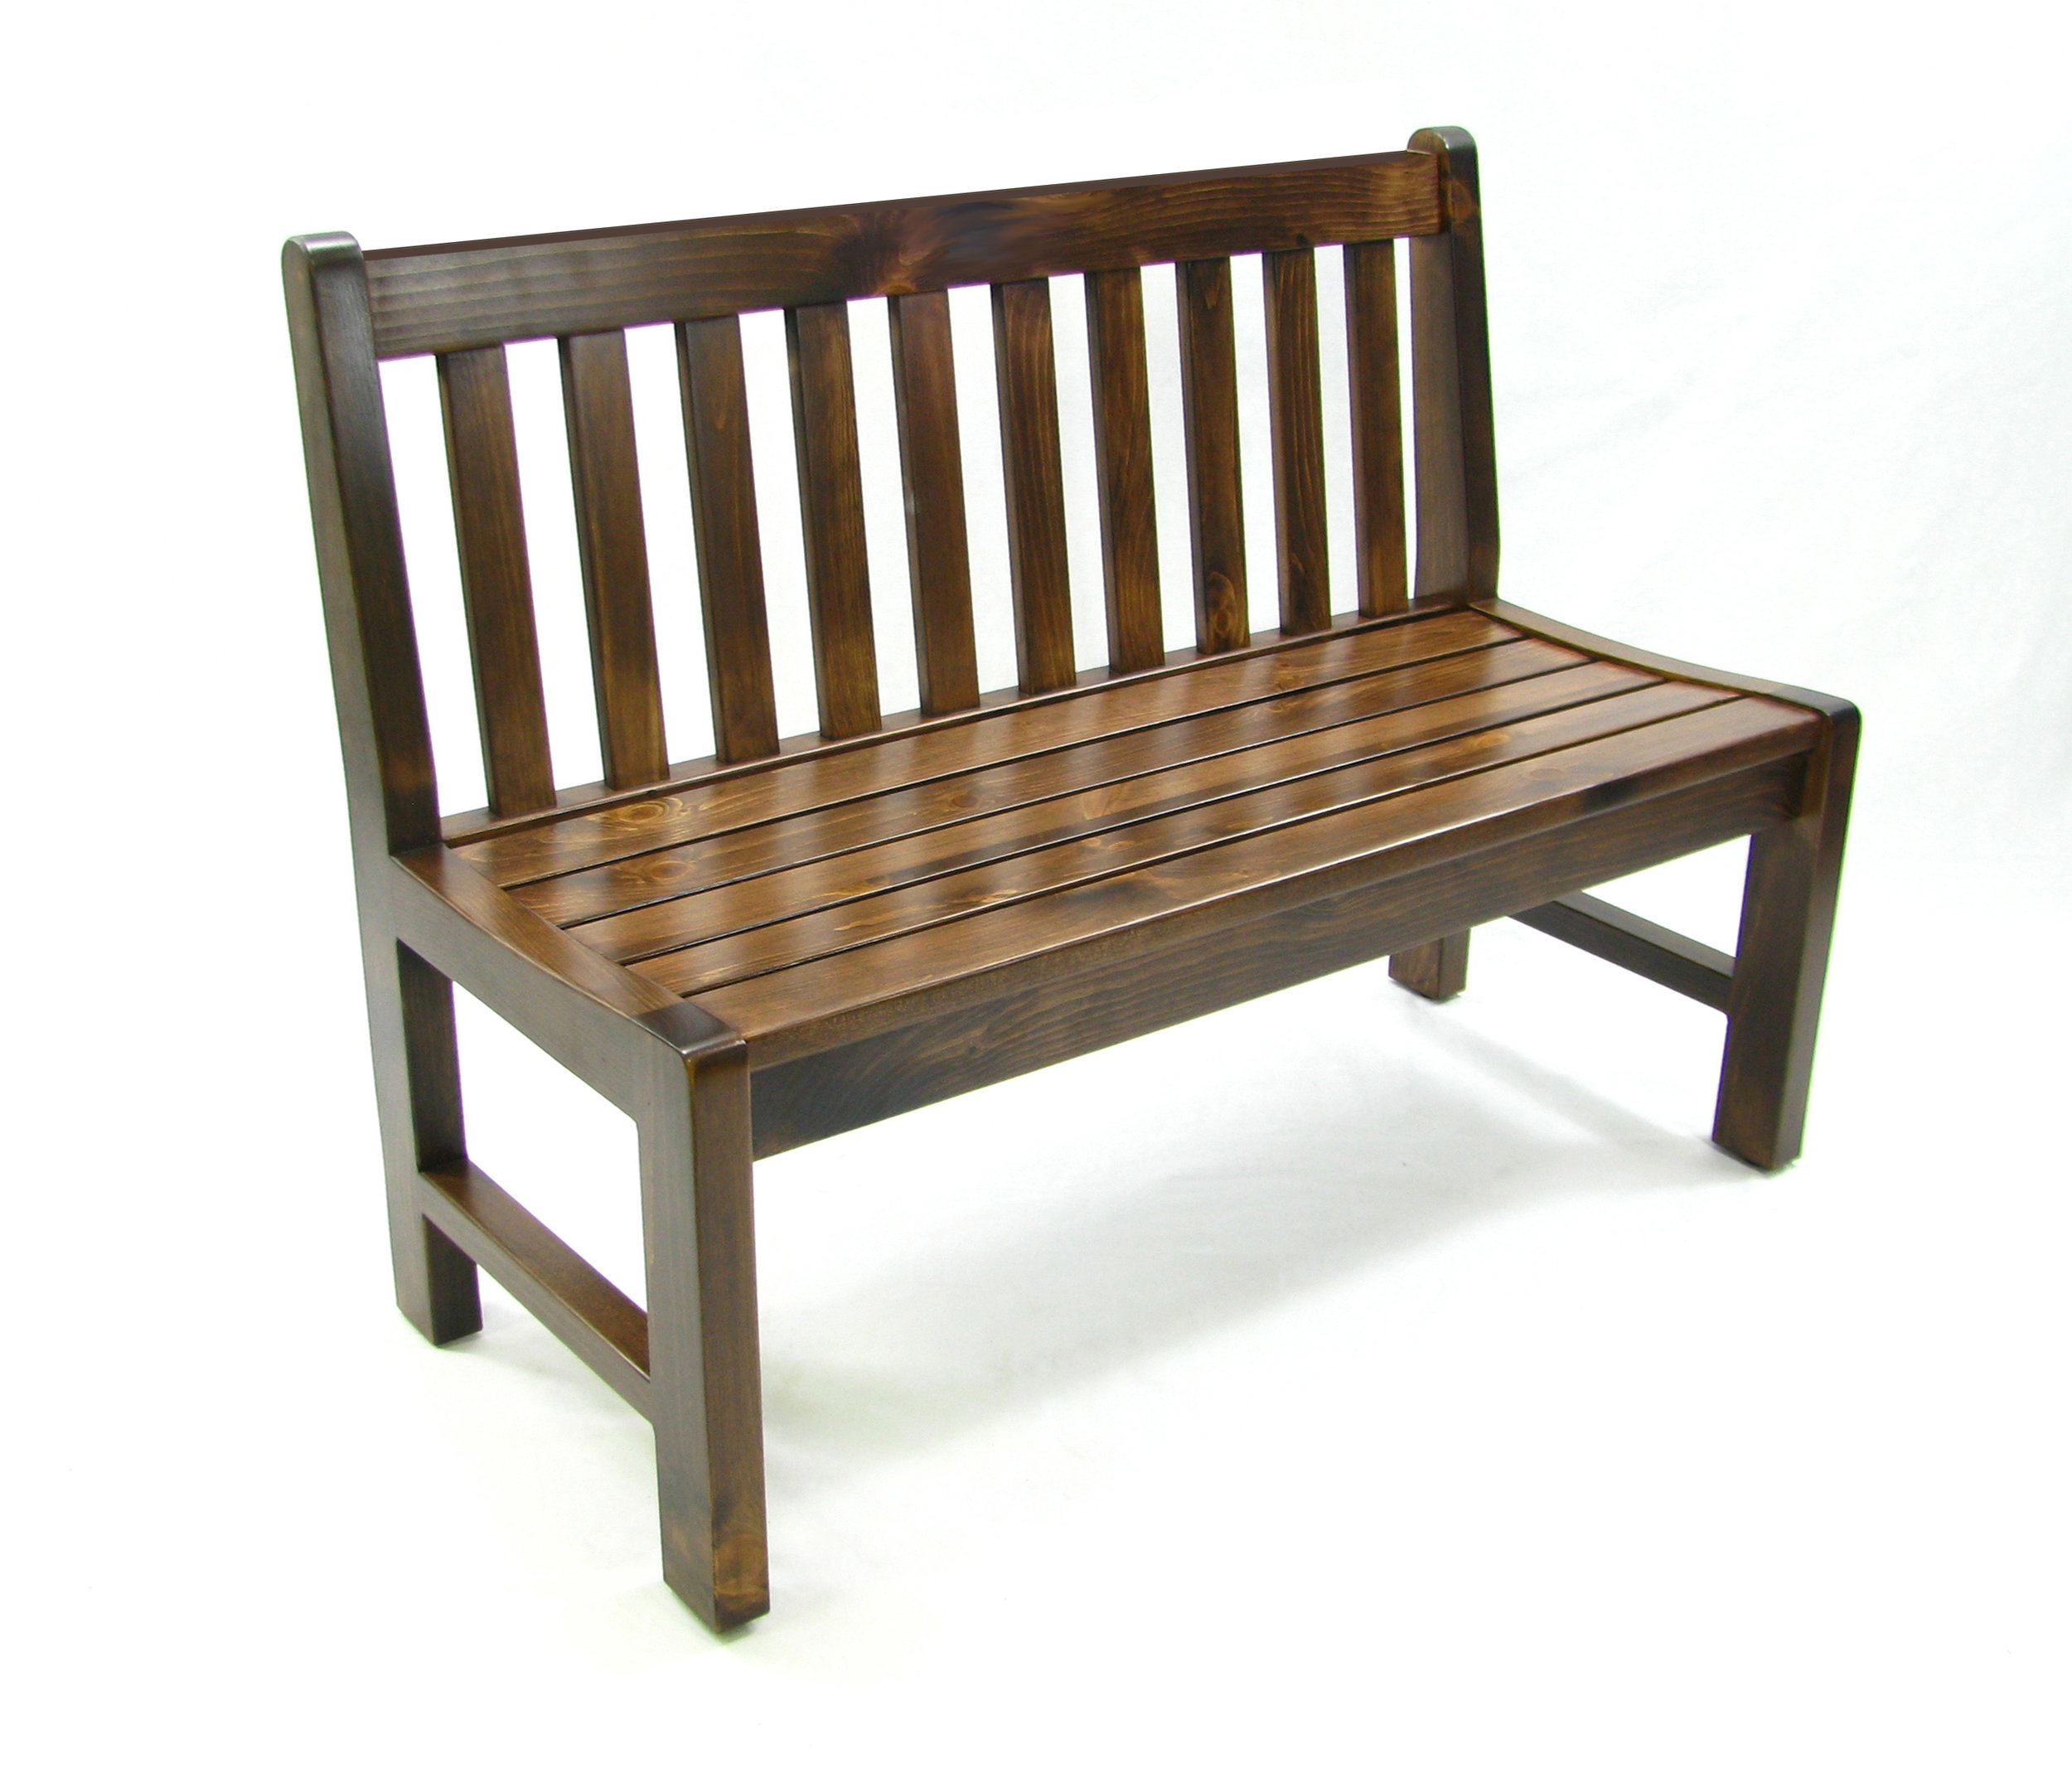 Waiting Bench without Arms - BN1970